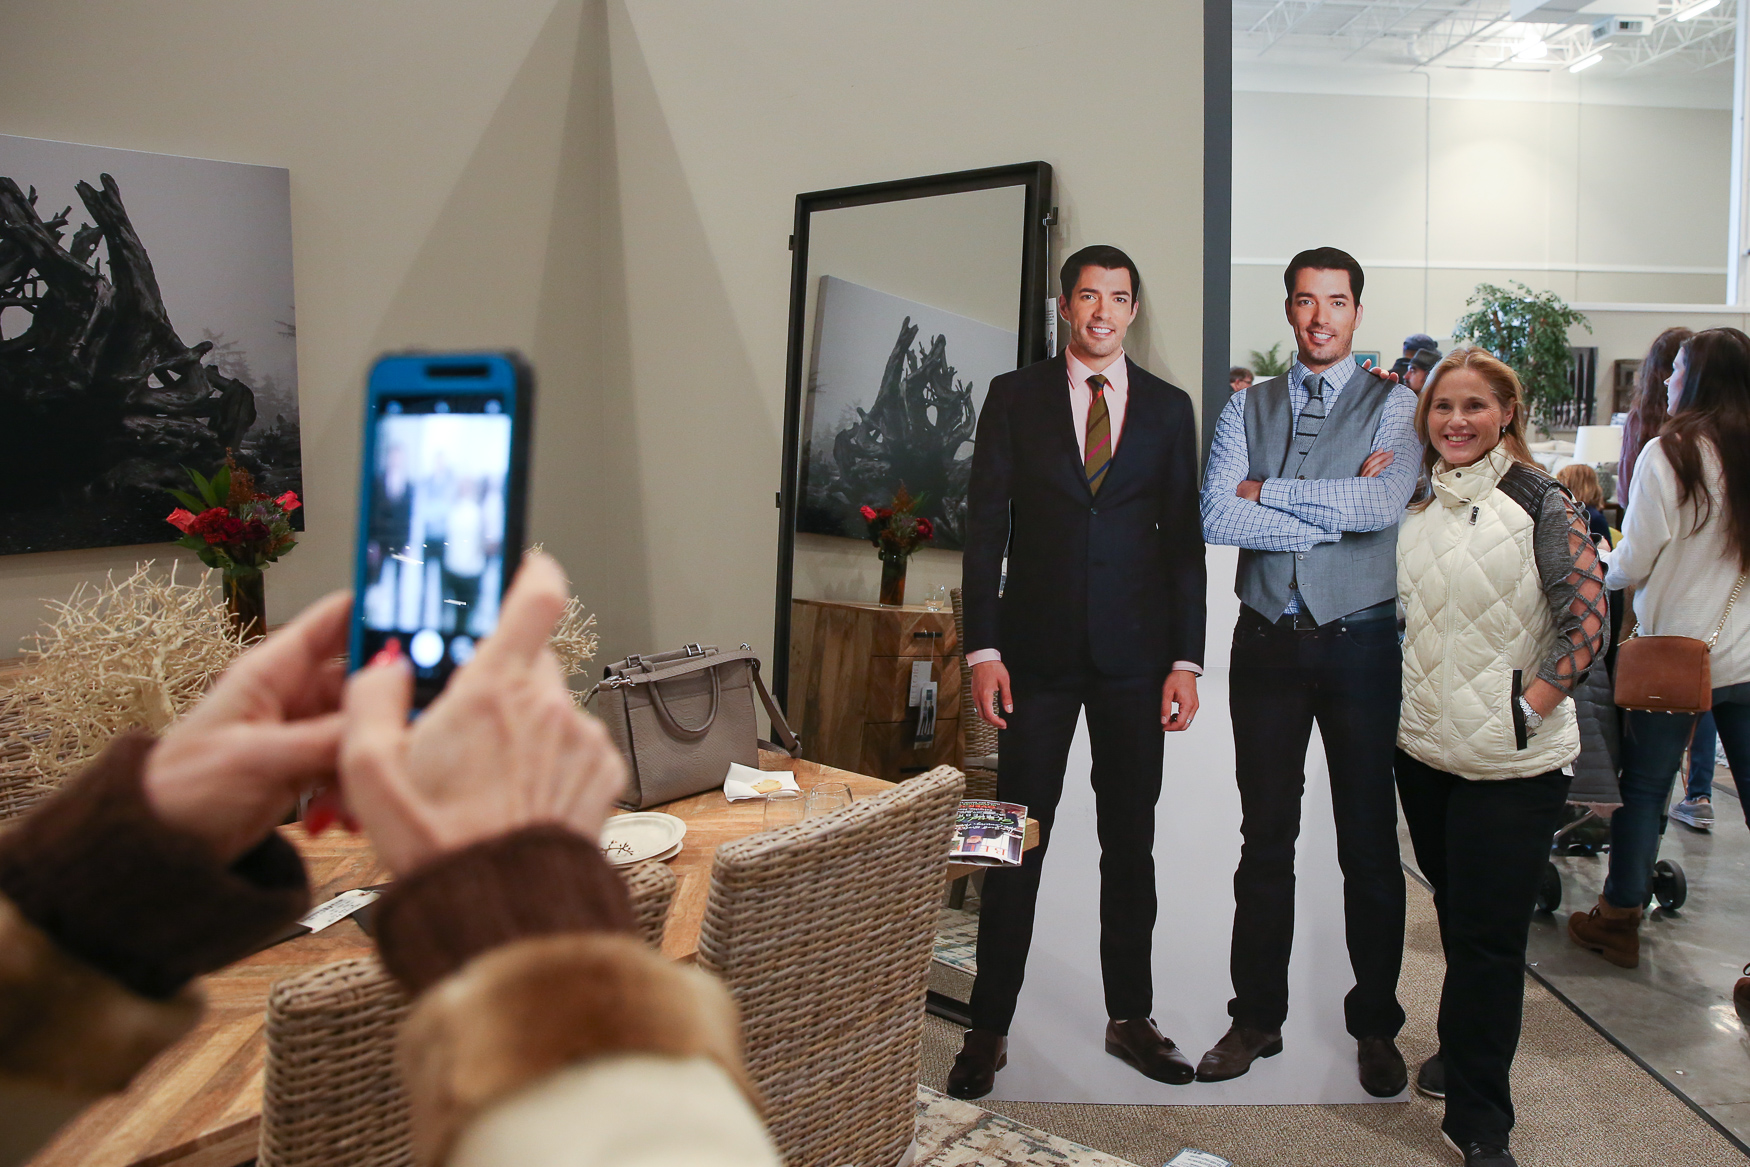 "Drew and Jonathan Scott, also known as HGTV's ""The Property Brothers,"" came to Sterling, VA to help Belfort Furniture open their new showroom on November 10. Diehard fans showed up at 6 a.m. - four hours before doors opened - in the hopes of catching a glimpse of The Scott brothers and snag a selfie. Hundreds of people showed up to the event and listened to The Scott brothers read their popular children's book 'Builder Brothers: Big Plans', to their younger fans. All the attendees had the chance to shop The Scott brothers' furniture line - Scott Living, as well as snack on breakfast items, request balloon animals and listen to live music. (Amanda Andrade-Rhoades/DC Refined)"